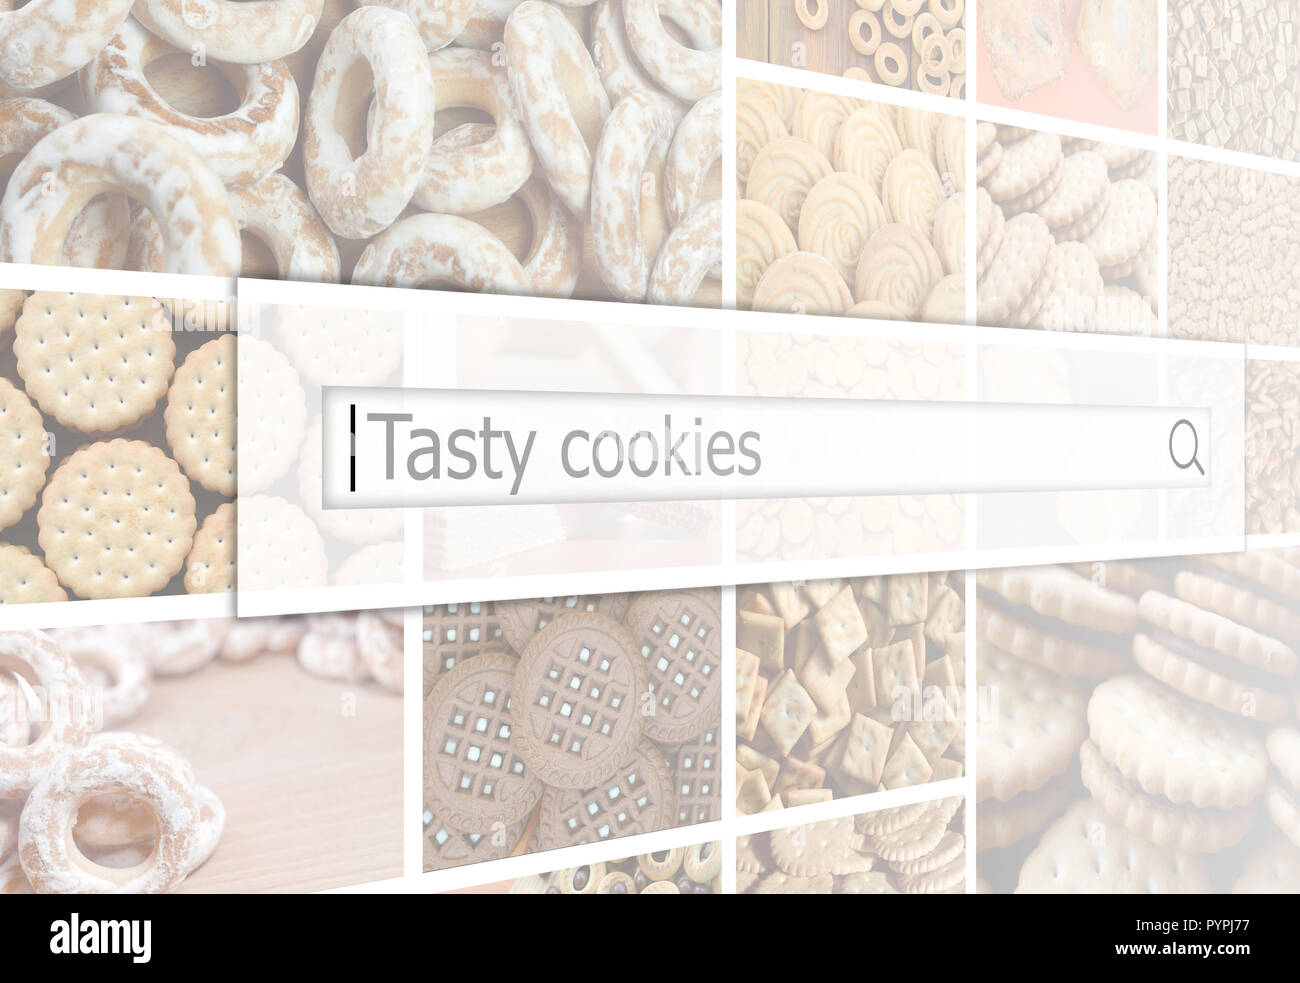 Visualization of the search bar on the background of a collage of many pictures with various sweets close up. Tasty cookies - Stock Image